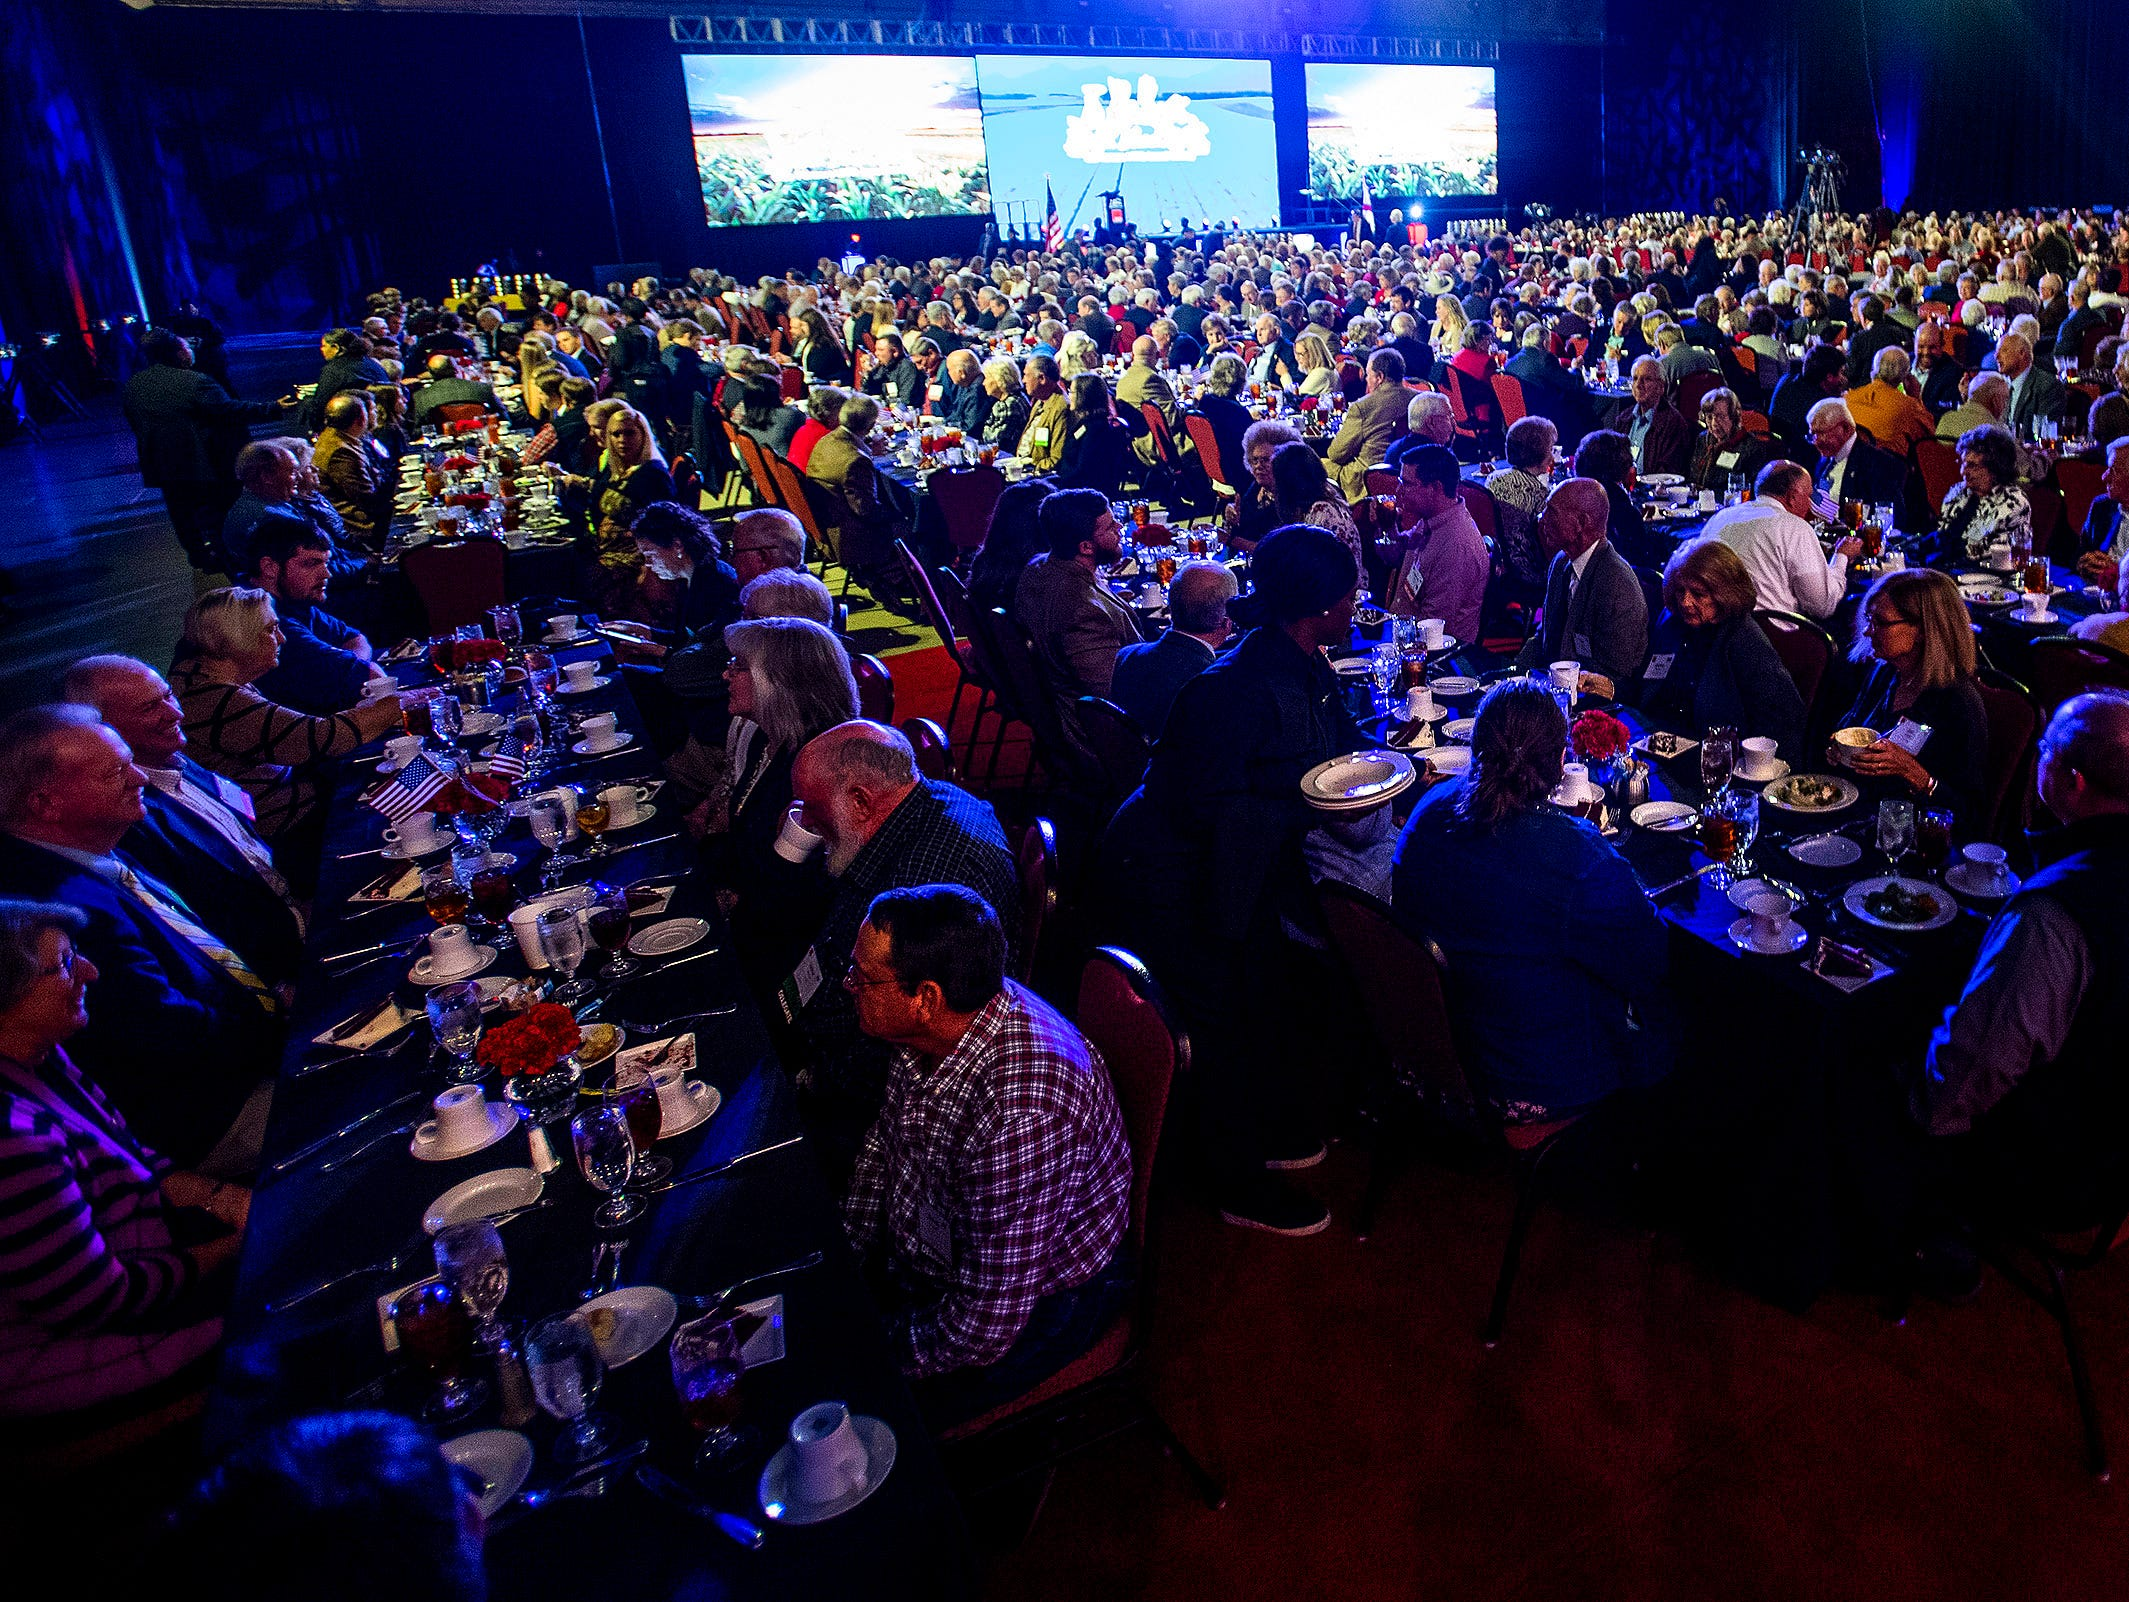 The keynote dinner of the Alfa Farmers Annual Meeting at the Convention Center in Montgomery, Ala., on Monday evening December 3, 2018.